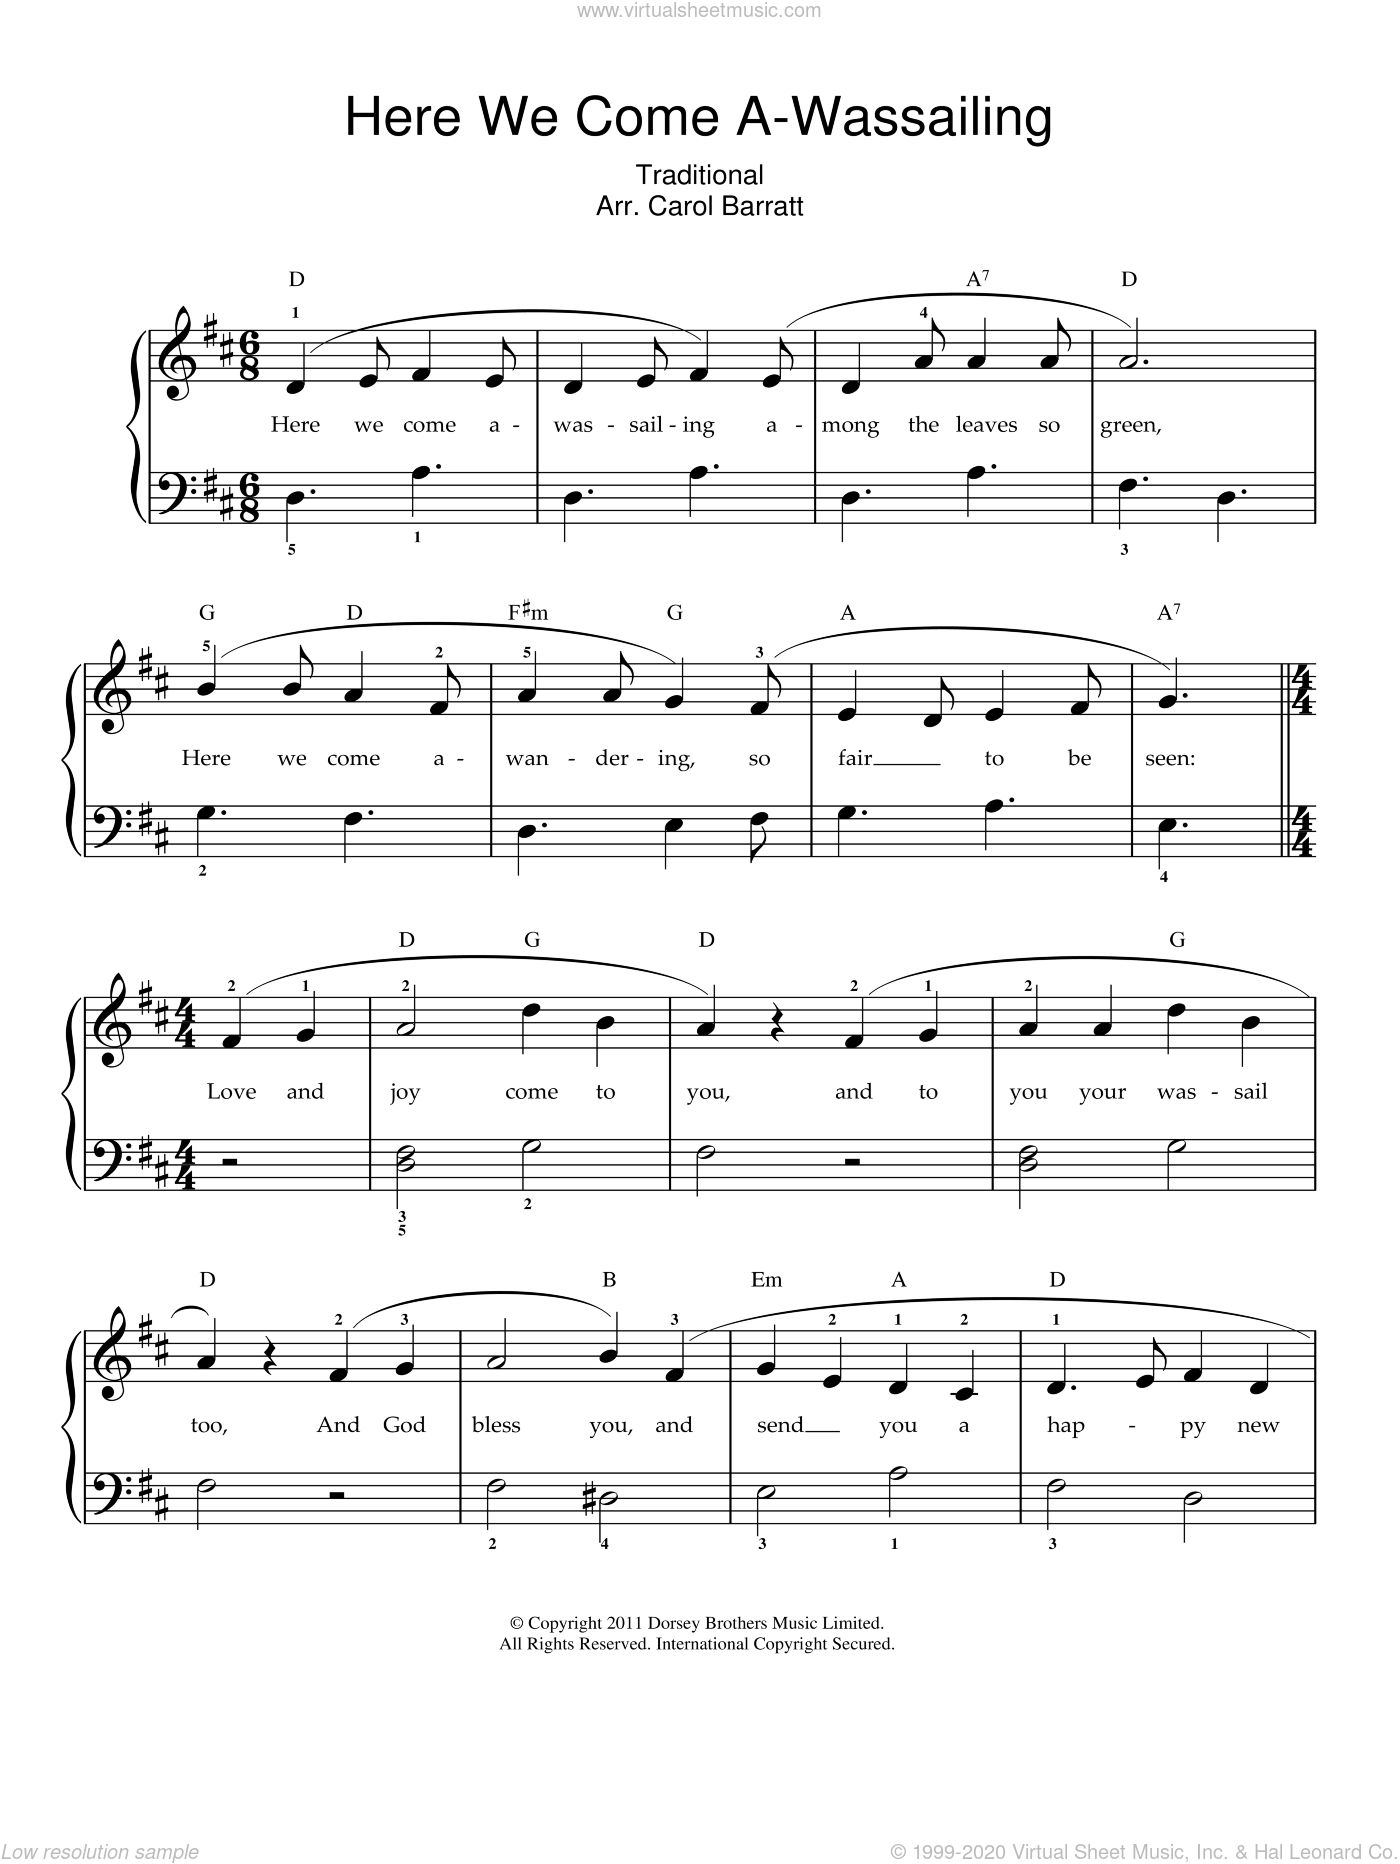 Here We Come A-Wassailing sheet music for voice and piano. Score Image Preview.